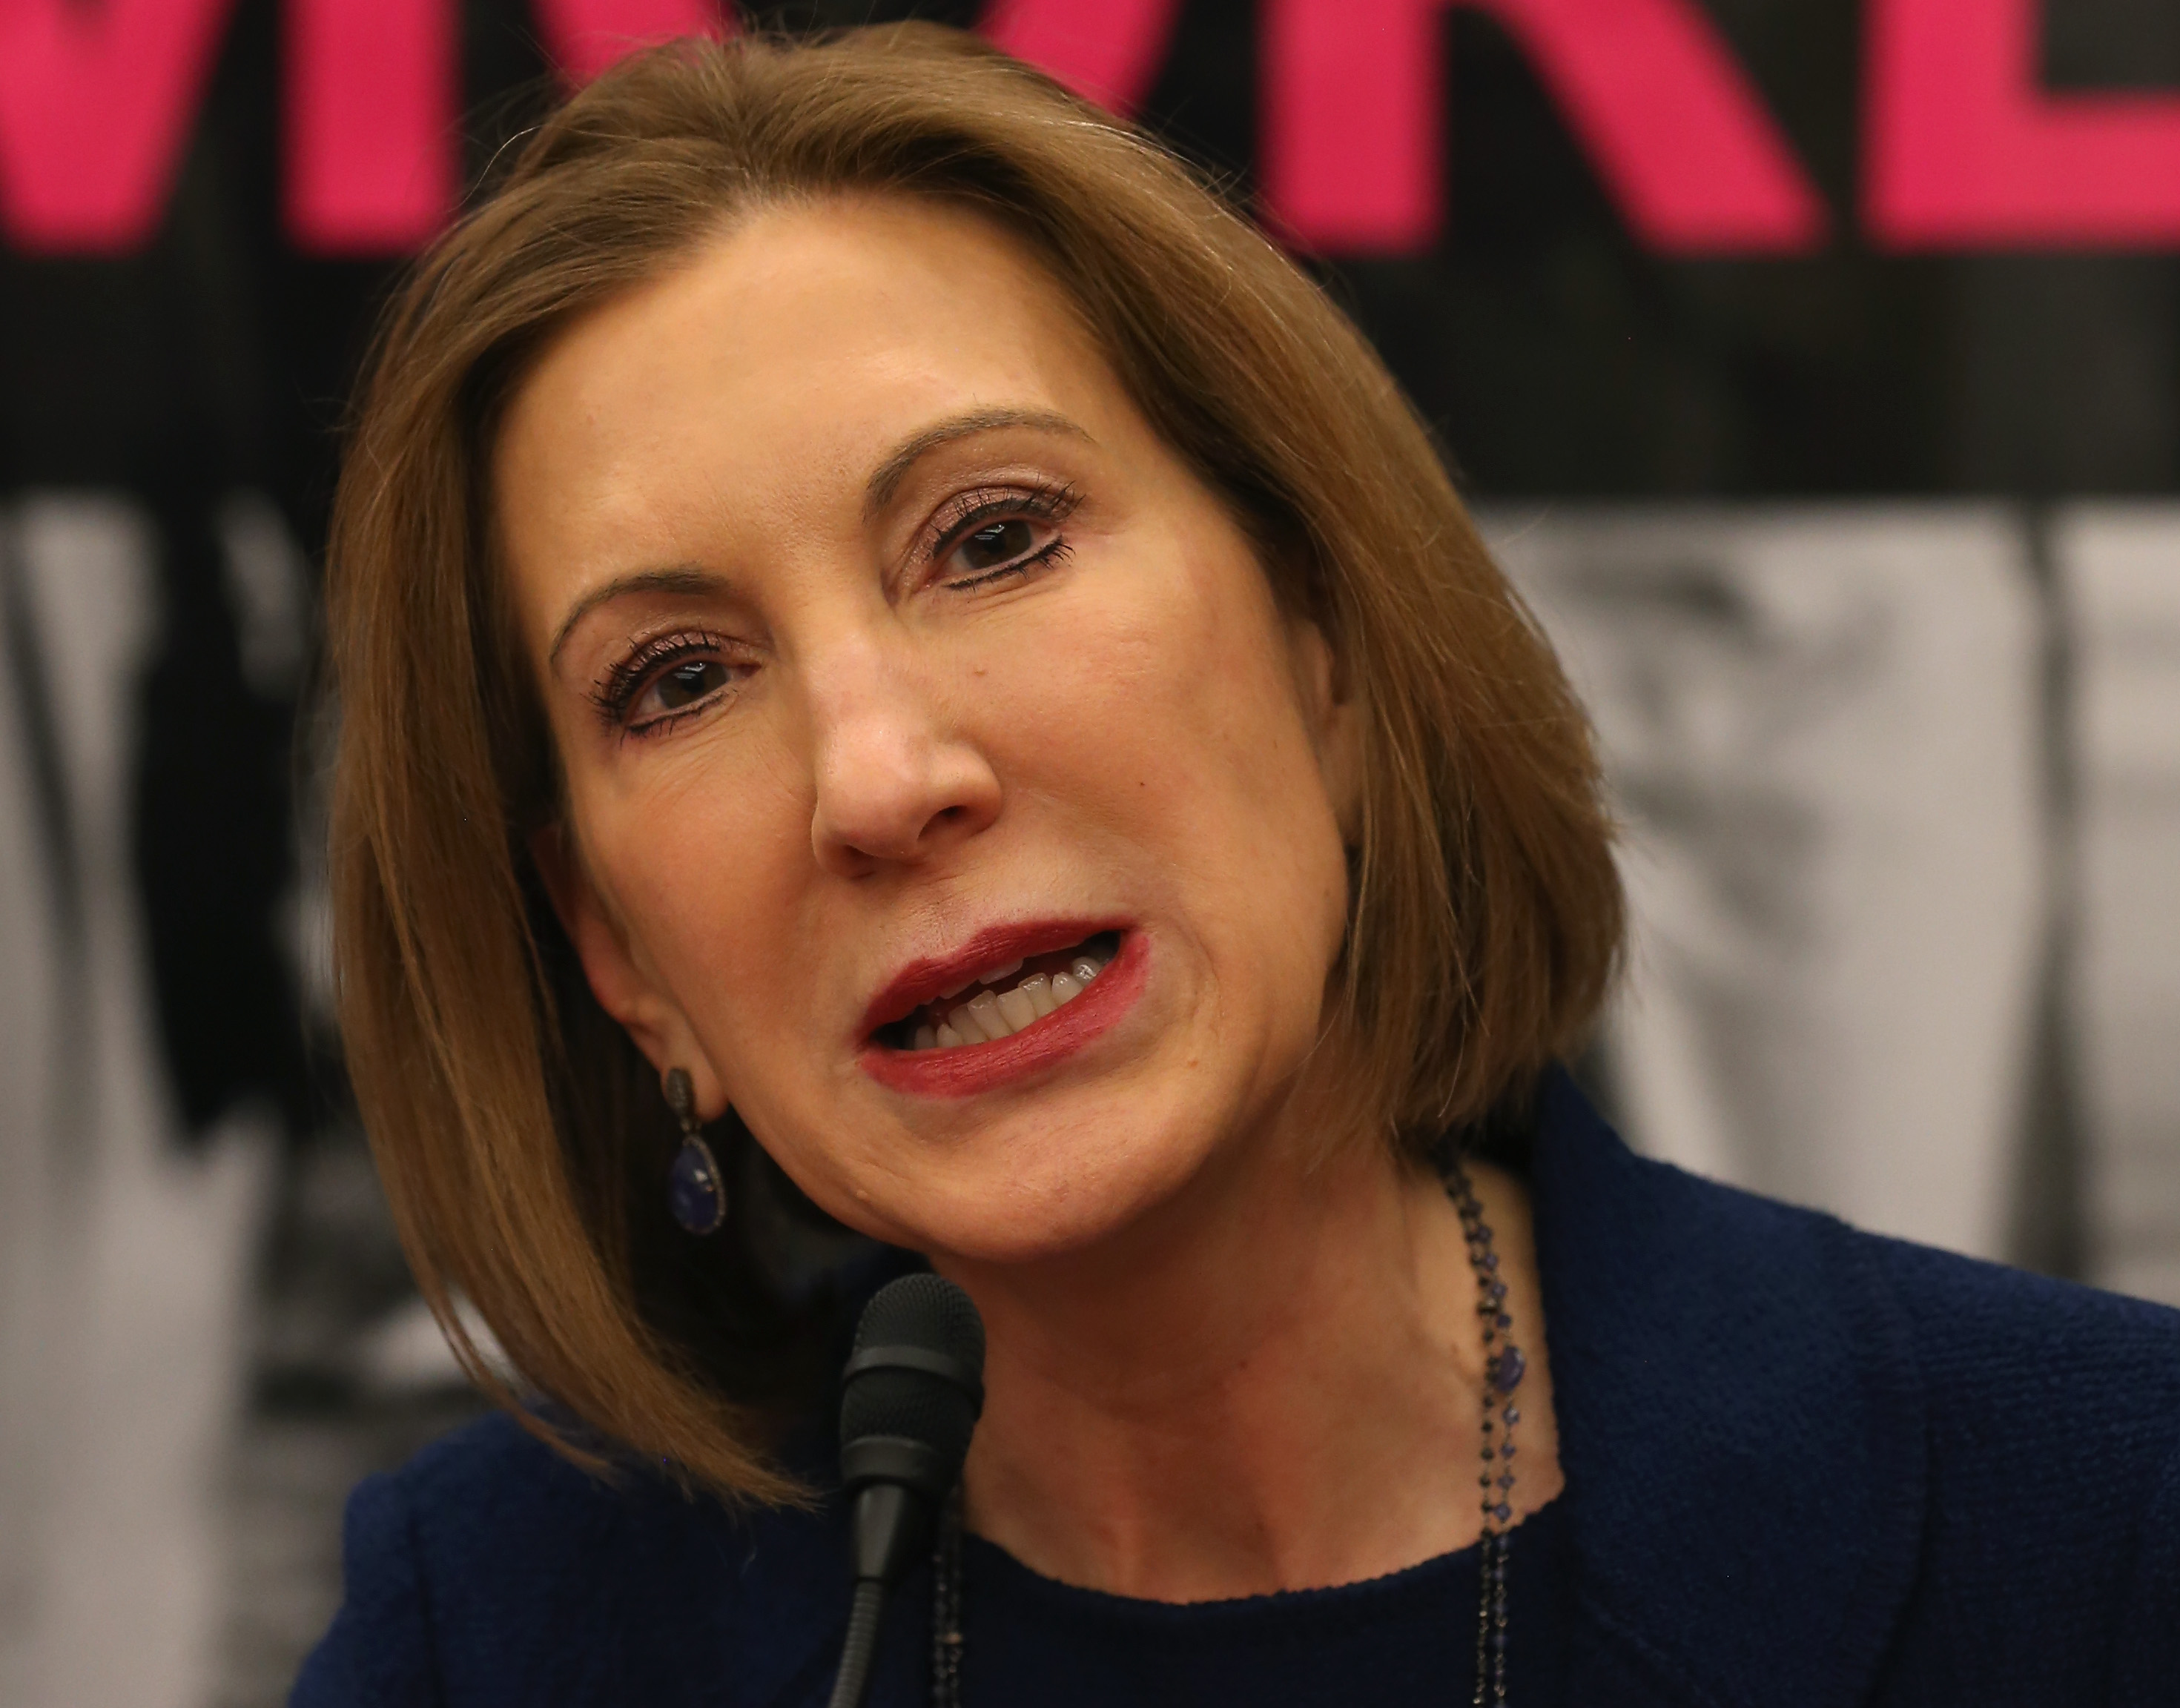 Carly Fiorina speaks during a forum on Capitol Hill March 16, 2015 in Washington, DC.